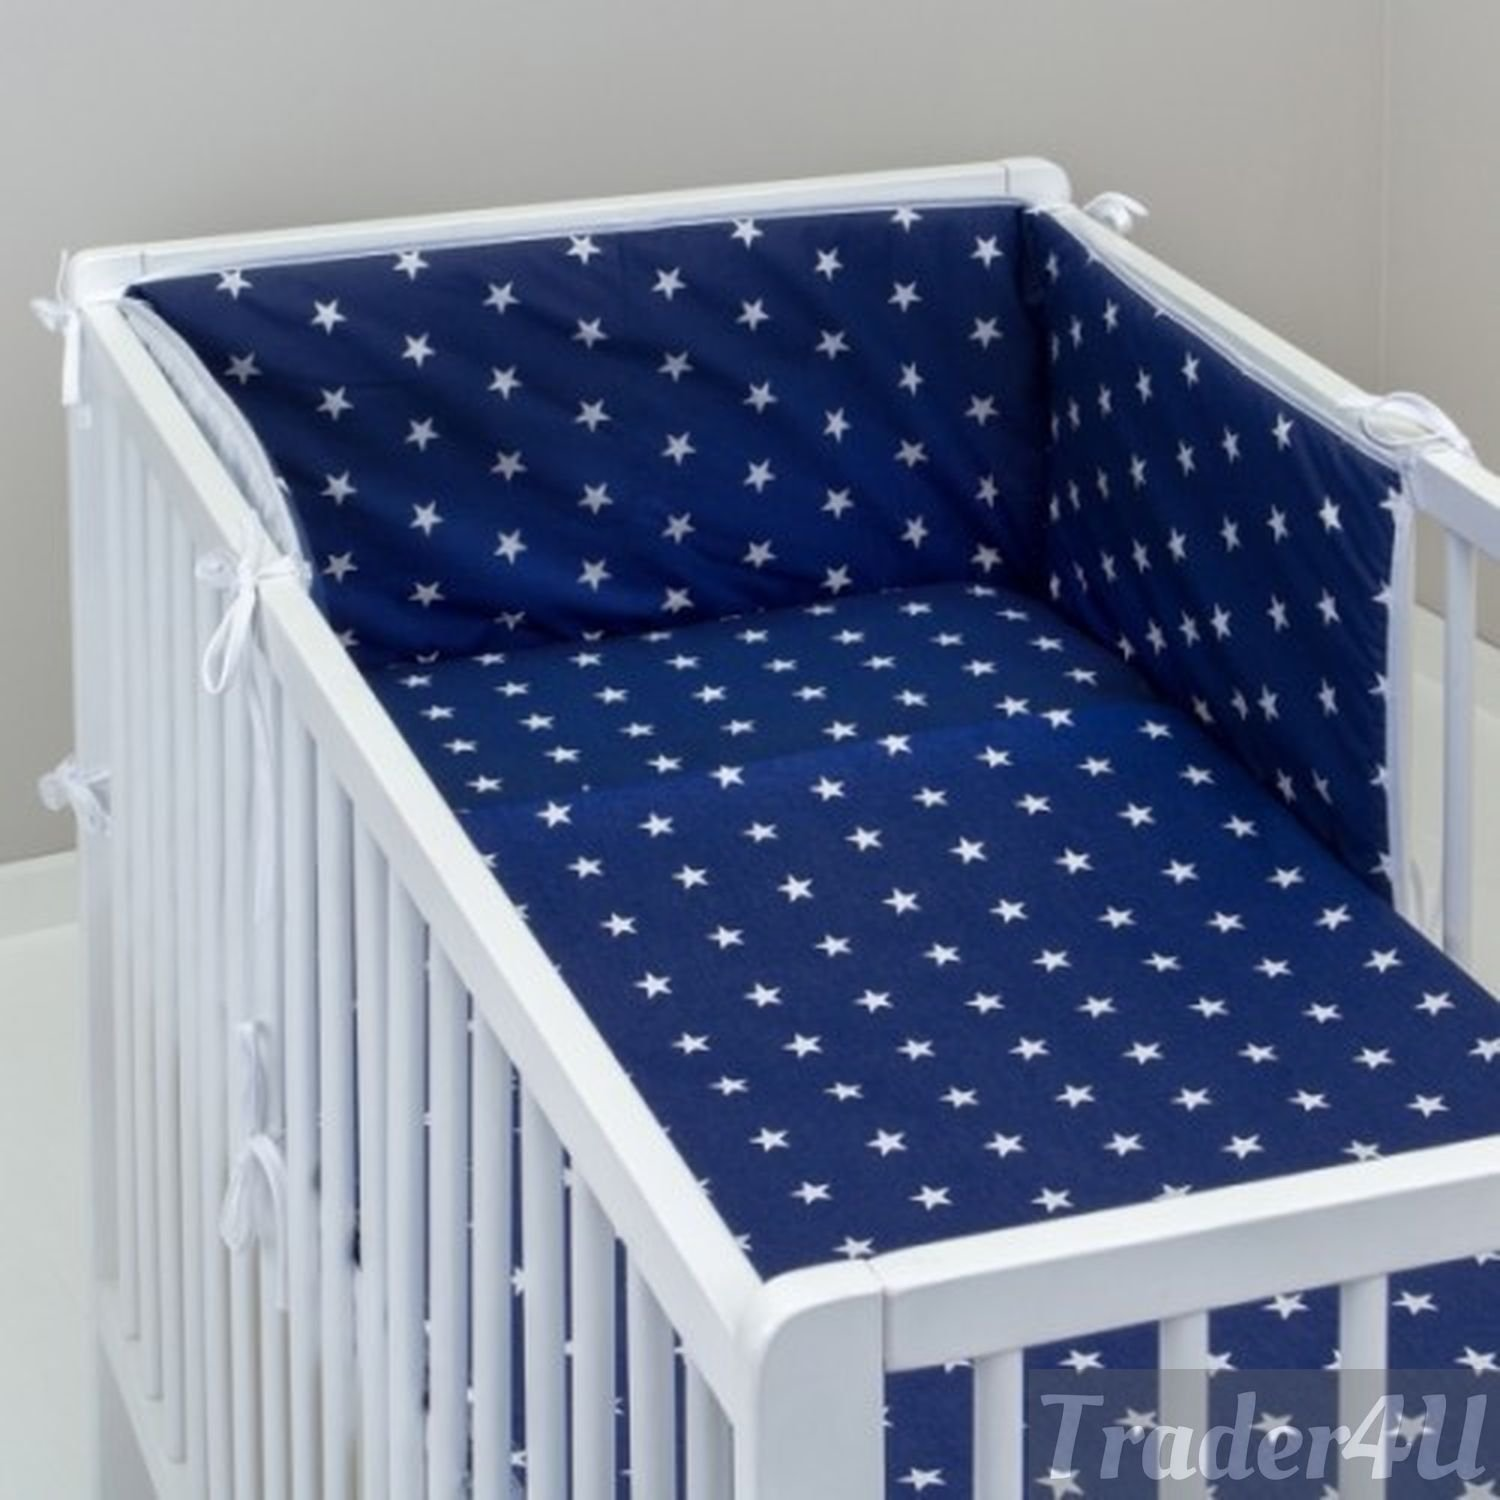 MillaLu 5 Pcs Baby Nursery Bedding Set fit to Cot 120x60cm or Cot Bed 140x70cm Padded Bumper Fit to Cot 120x60 cm, Big Stars White and Grey